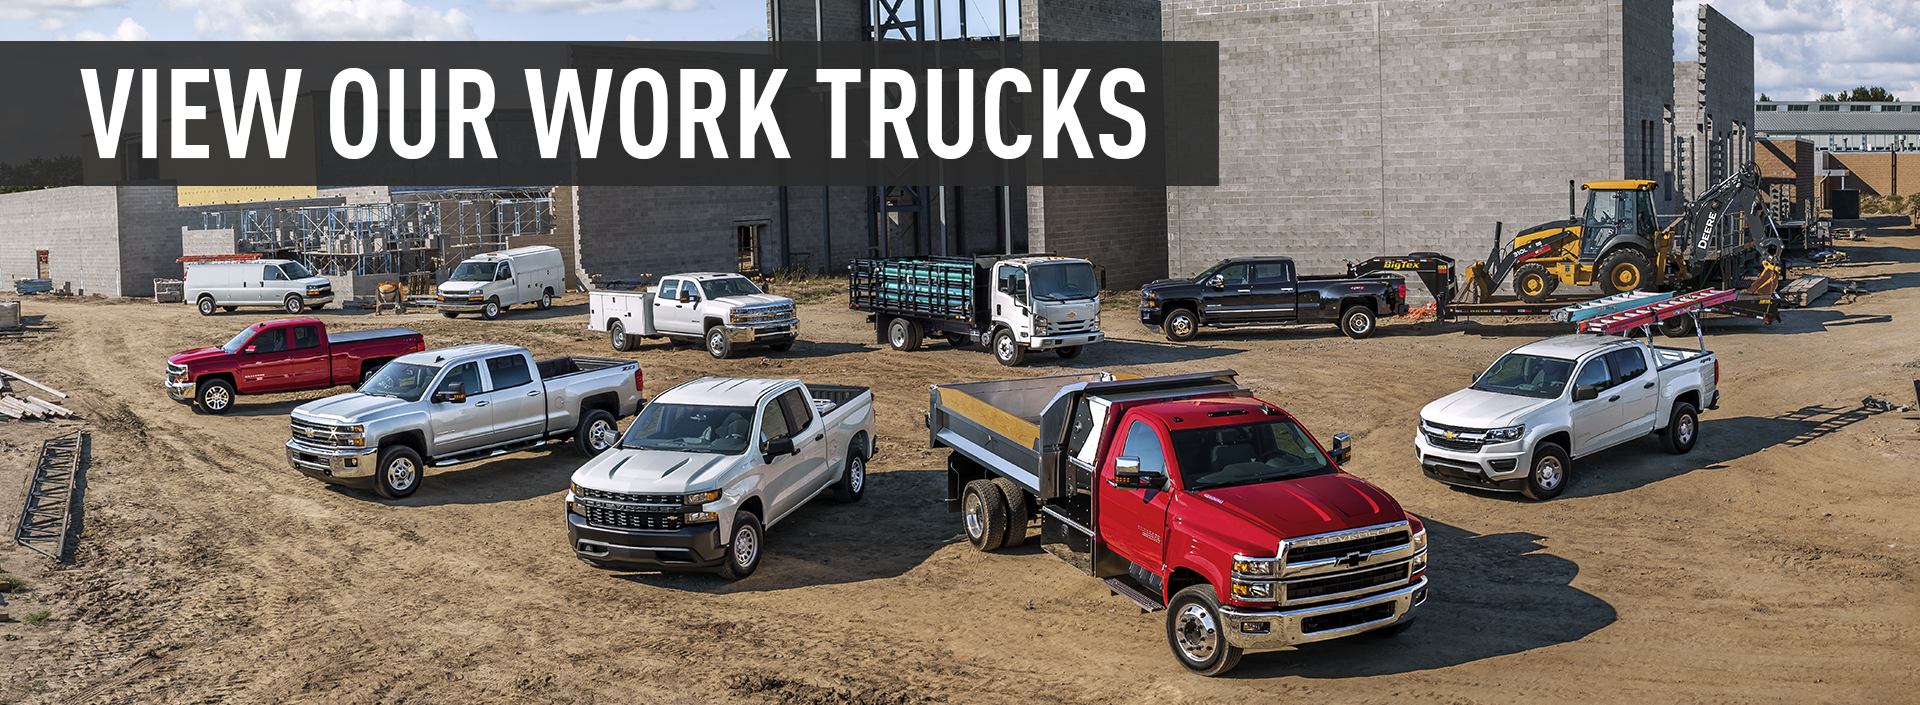 View Our Work Trucks